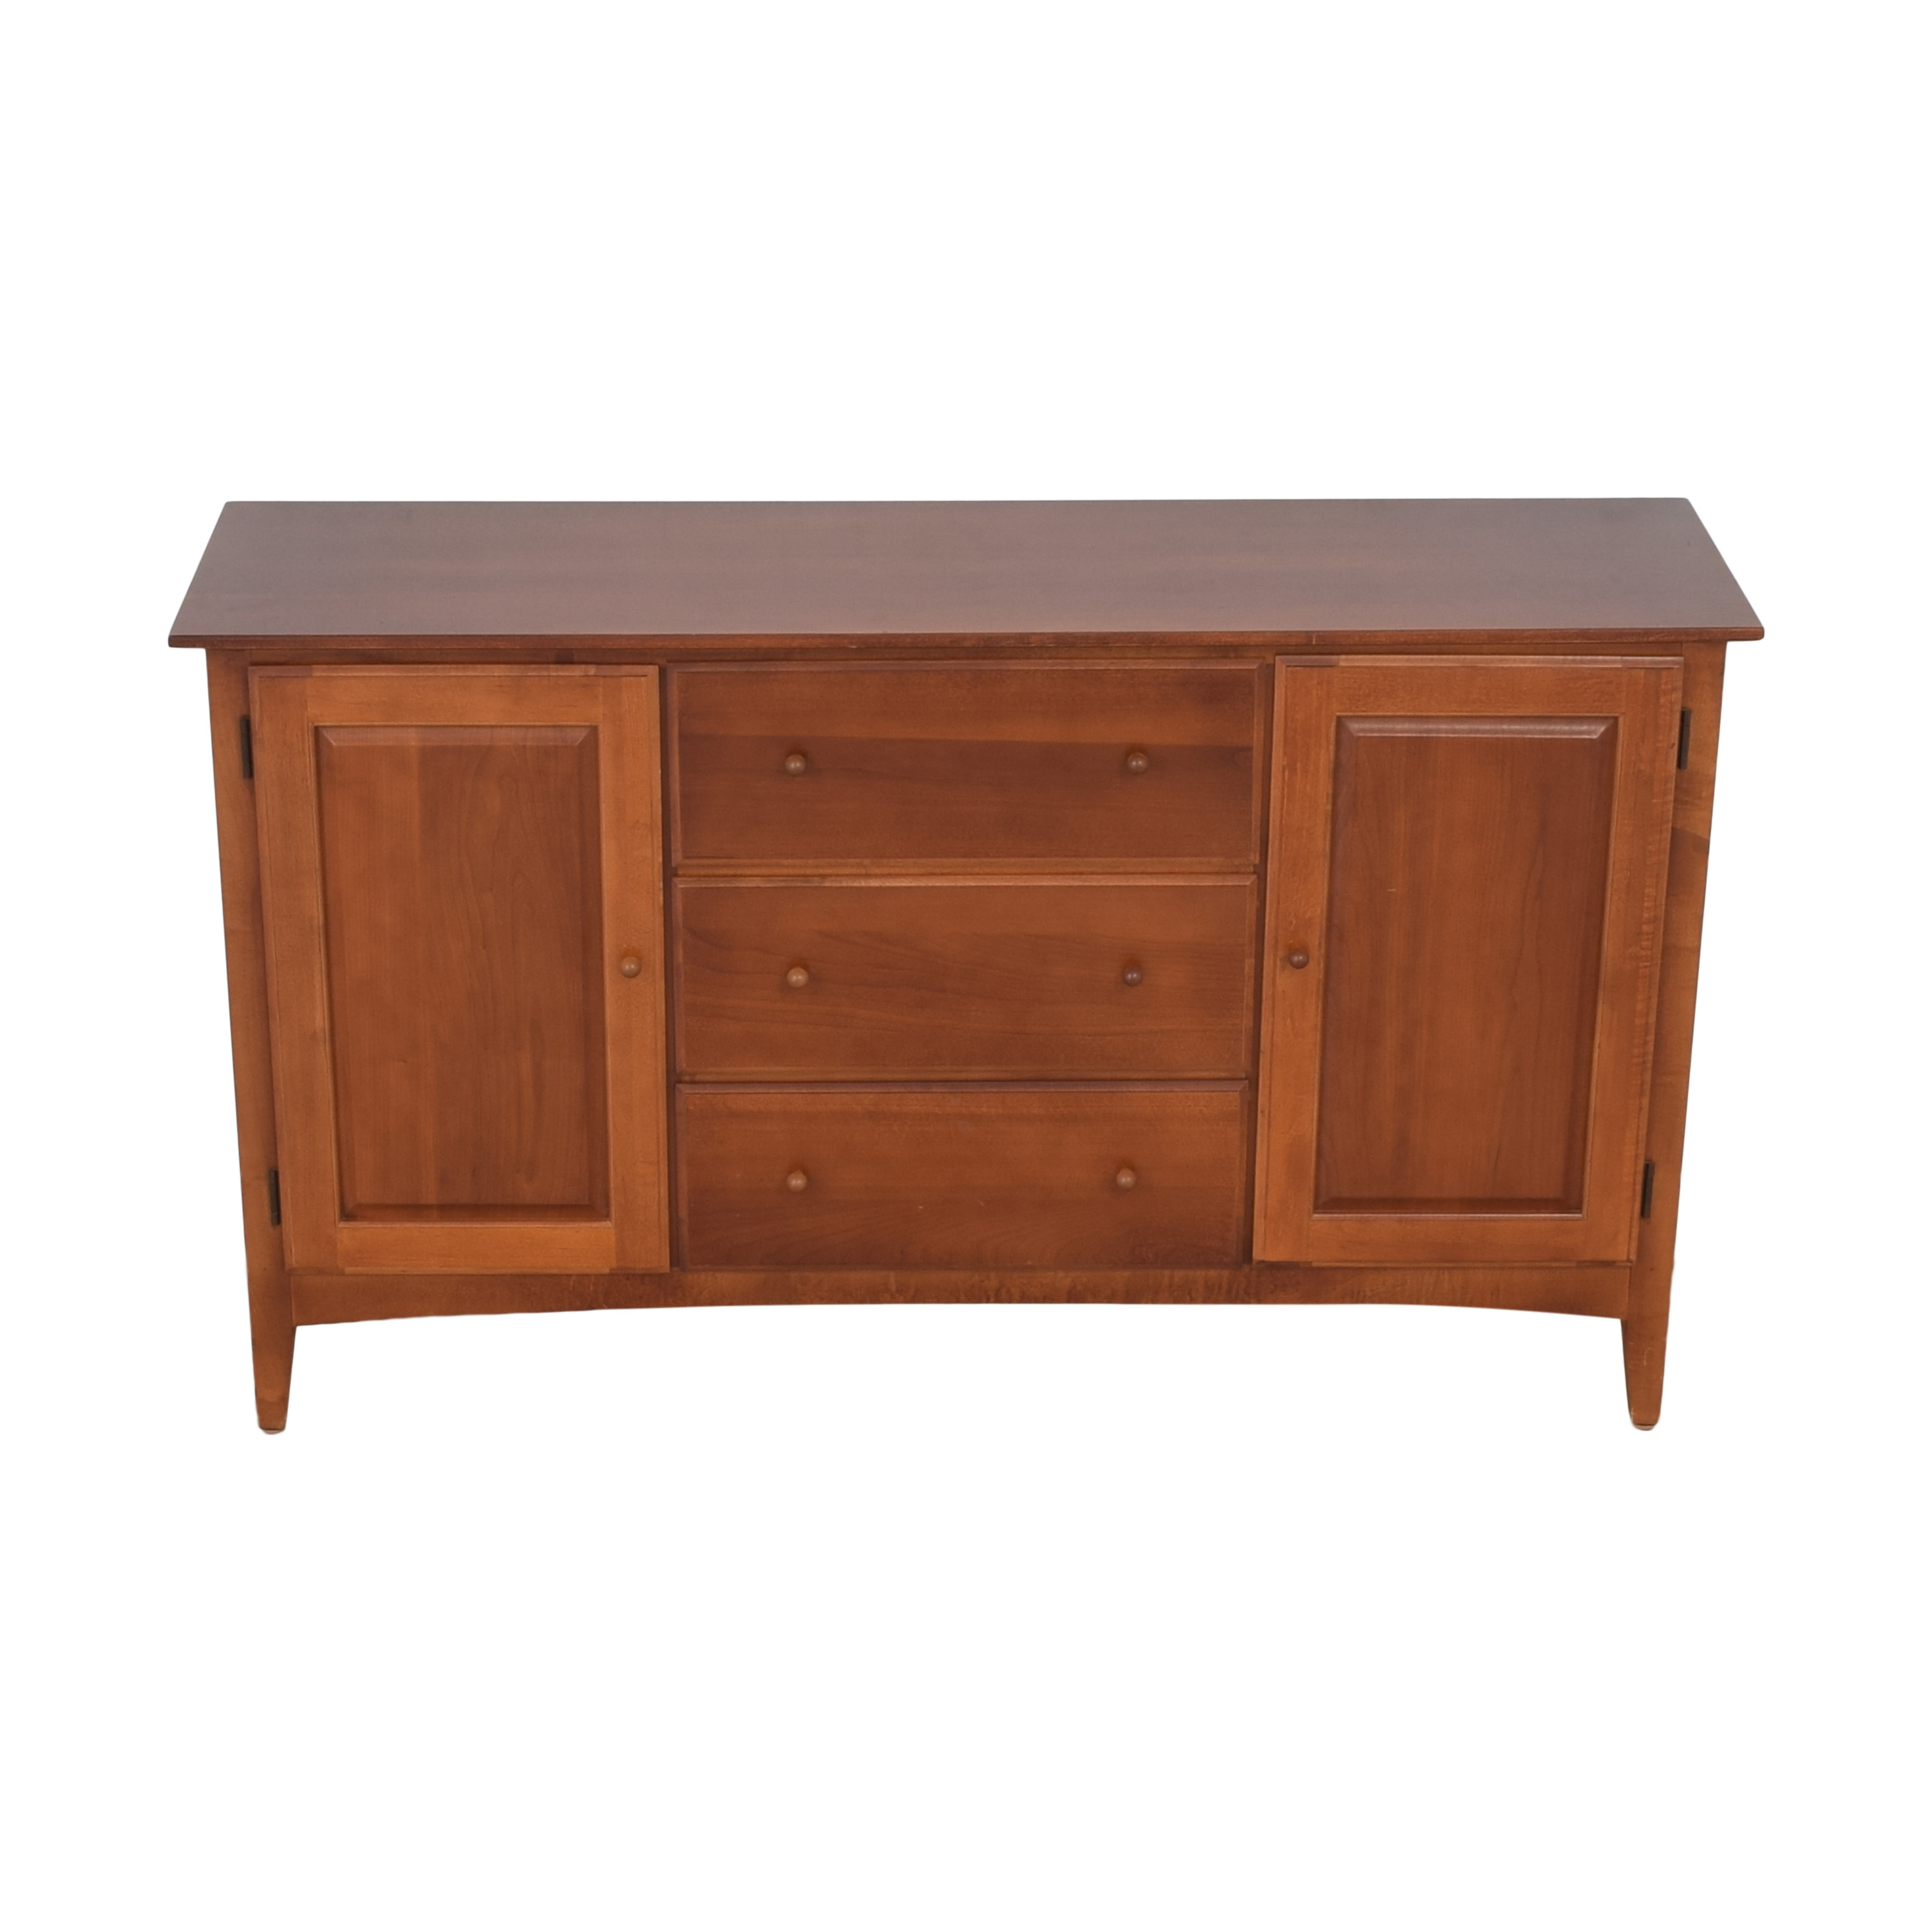 Thomasville Thomasville Impressions Buffet Sideboard brown